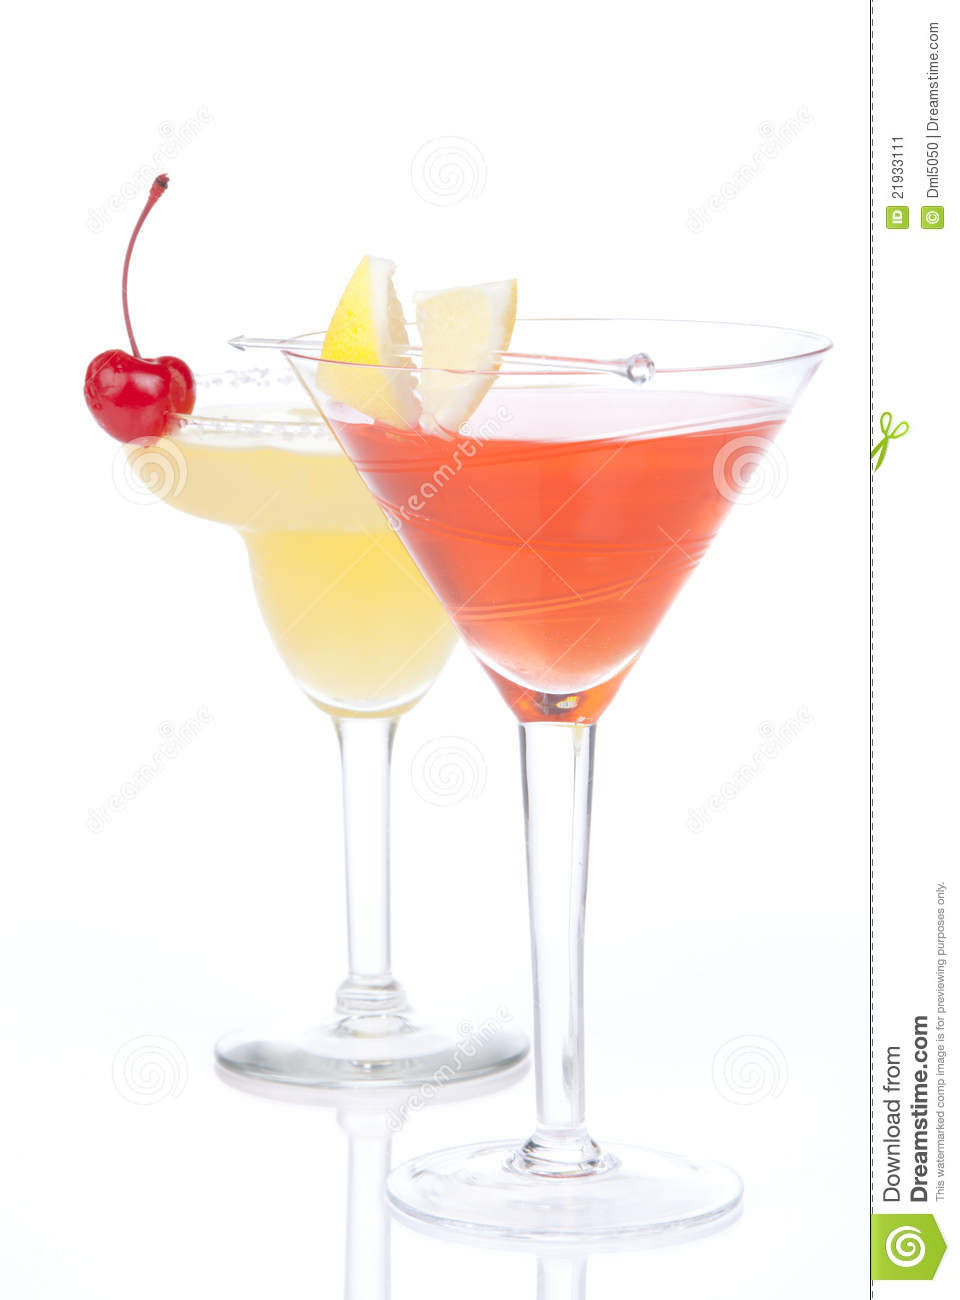 Tropical Drinks With Vodka  Summer Tropical Martini Cocktails With Vodka Stock Image